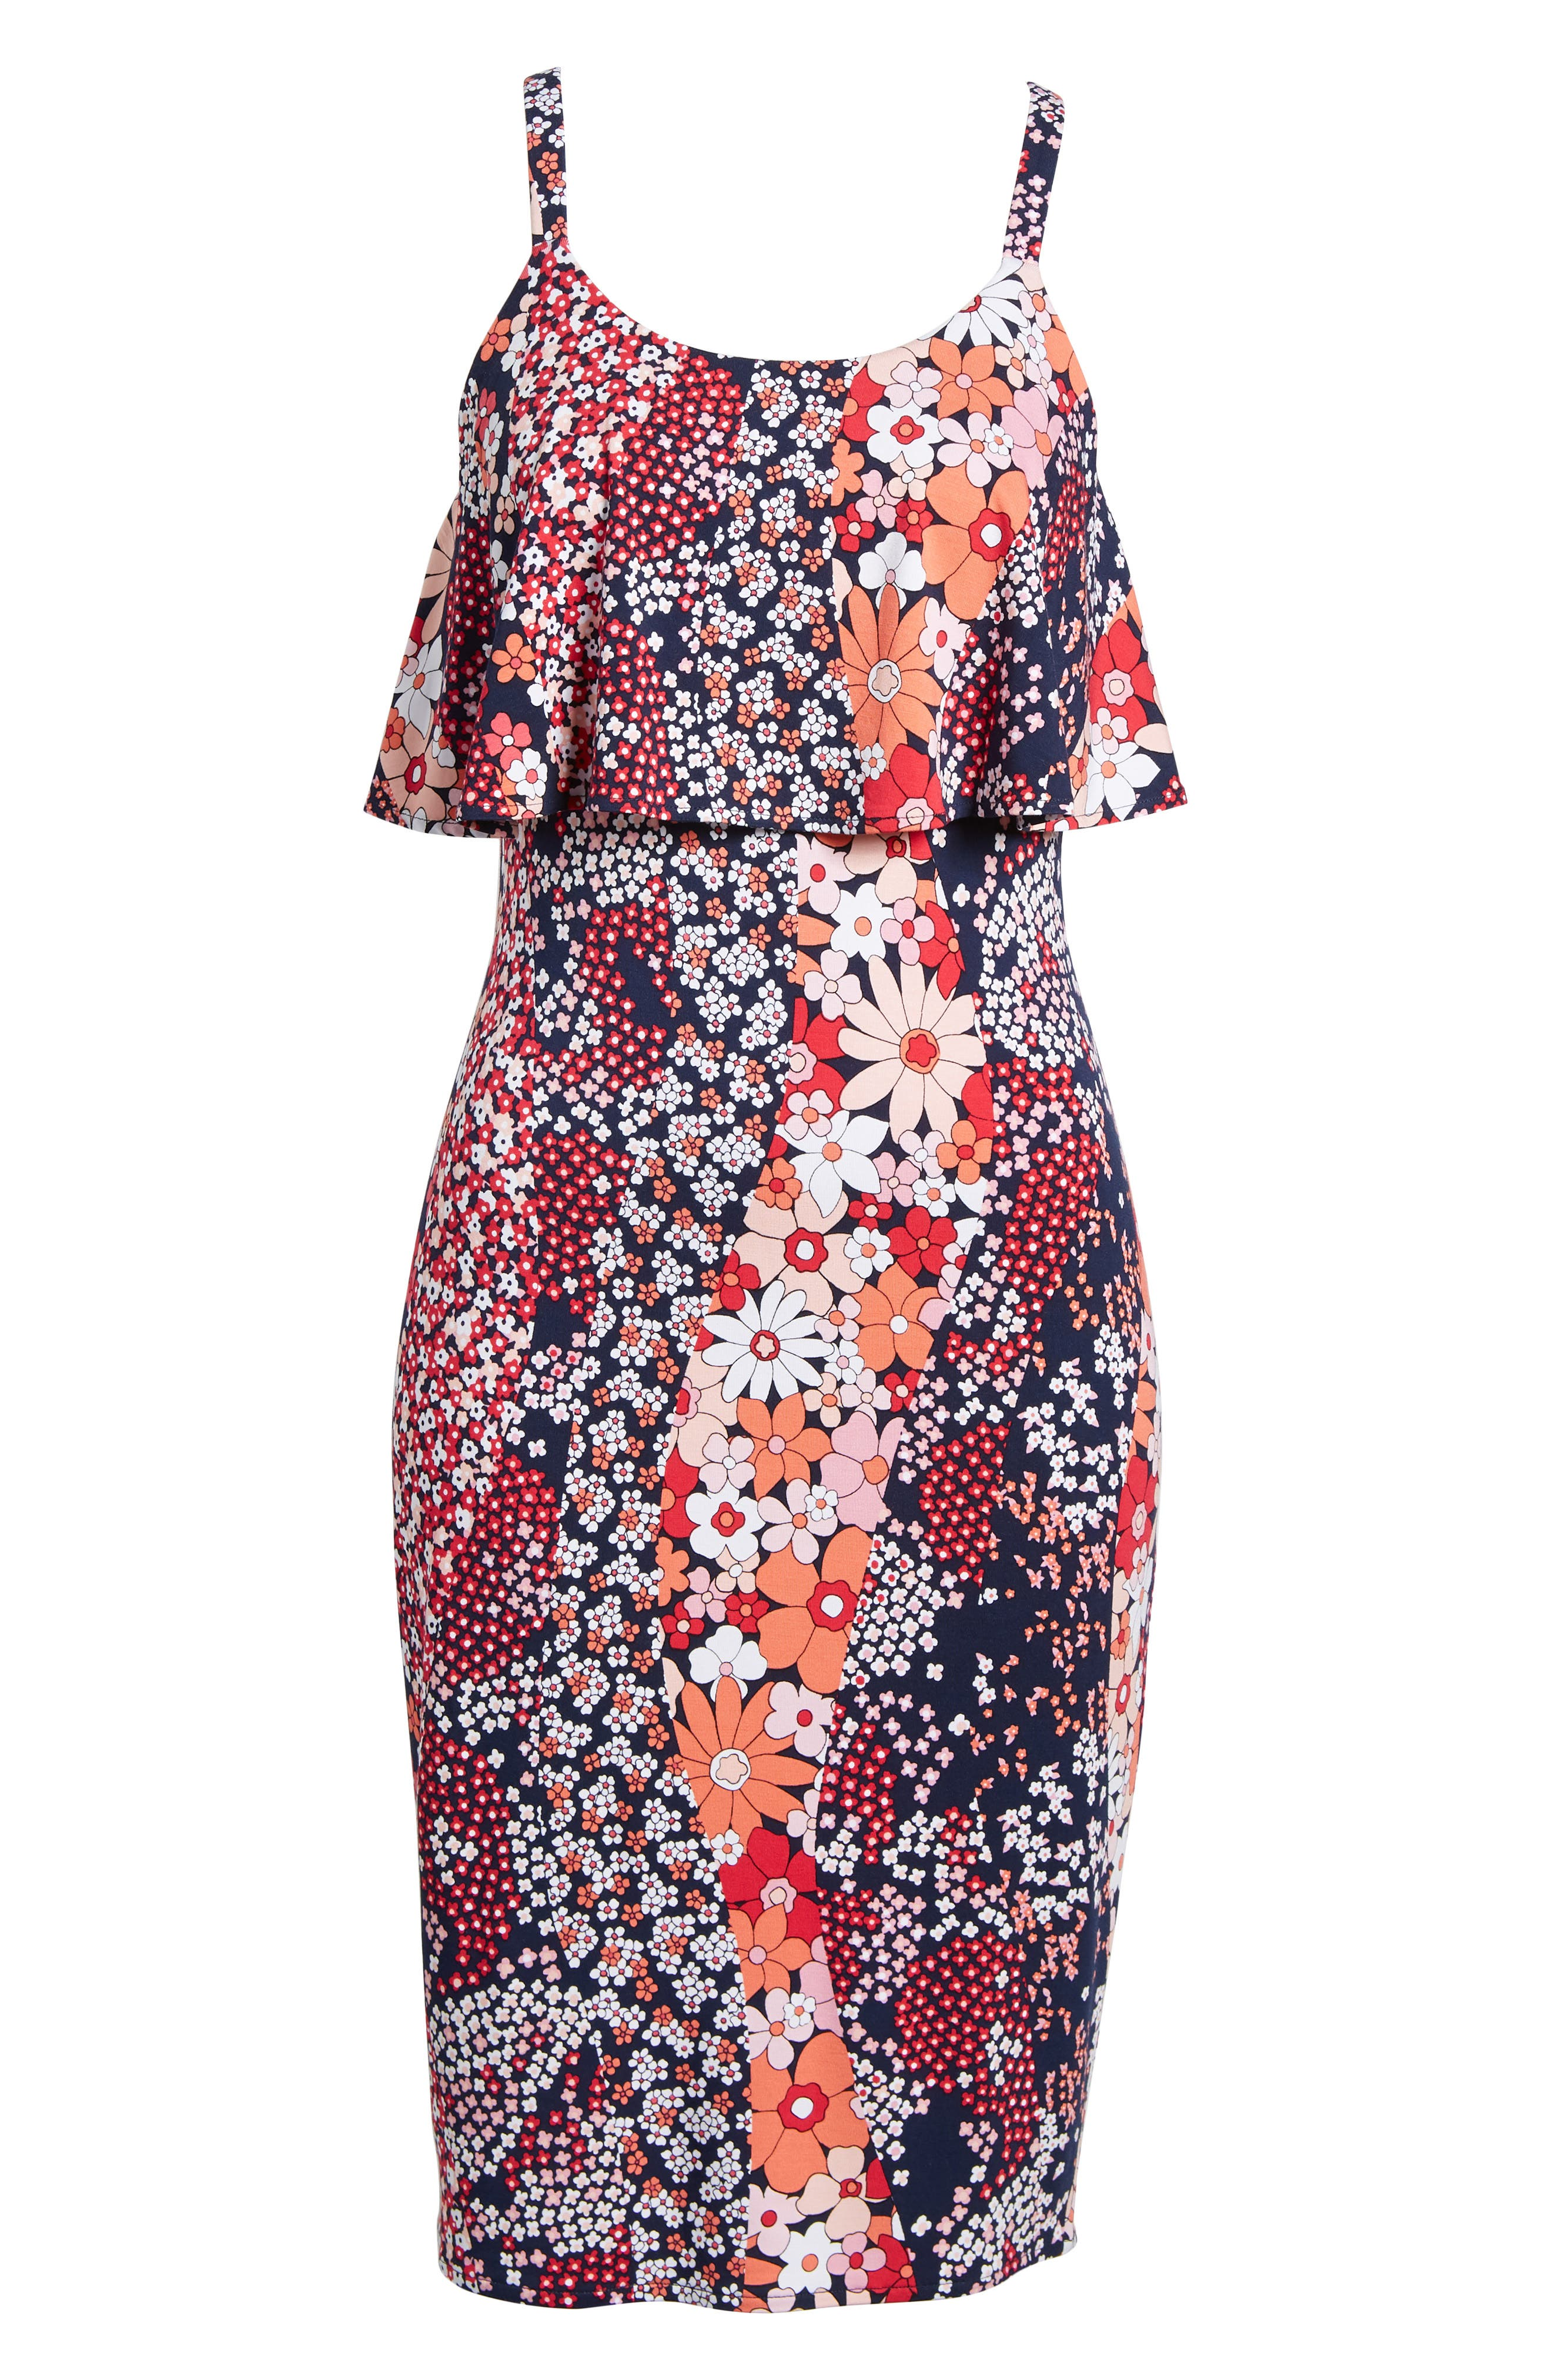 Print Floral Dress,                             Alternate thumbnail 6, color,                             True Navy/ Bright Blush